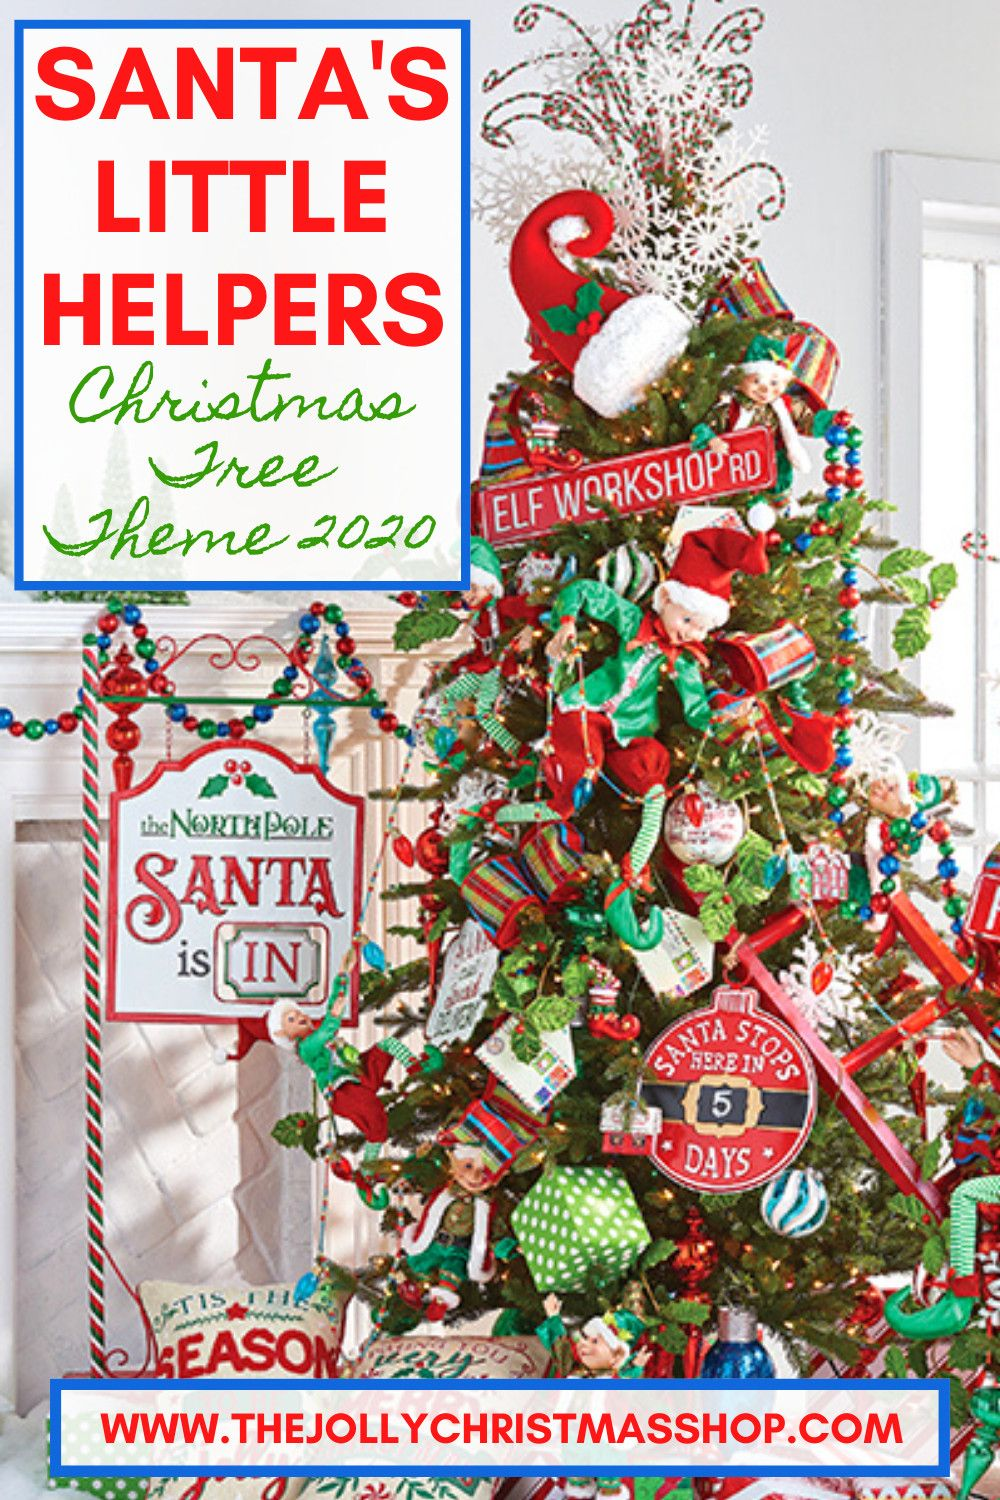 New For 2020 Santa S Little Helpers Christmas Tree Theme Getting Christmas Ready Is H In 2020 Elf Christmas Tree Elf Christmas Decorations Christmas Tree Themes